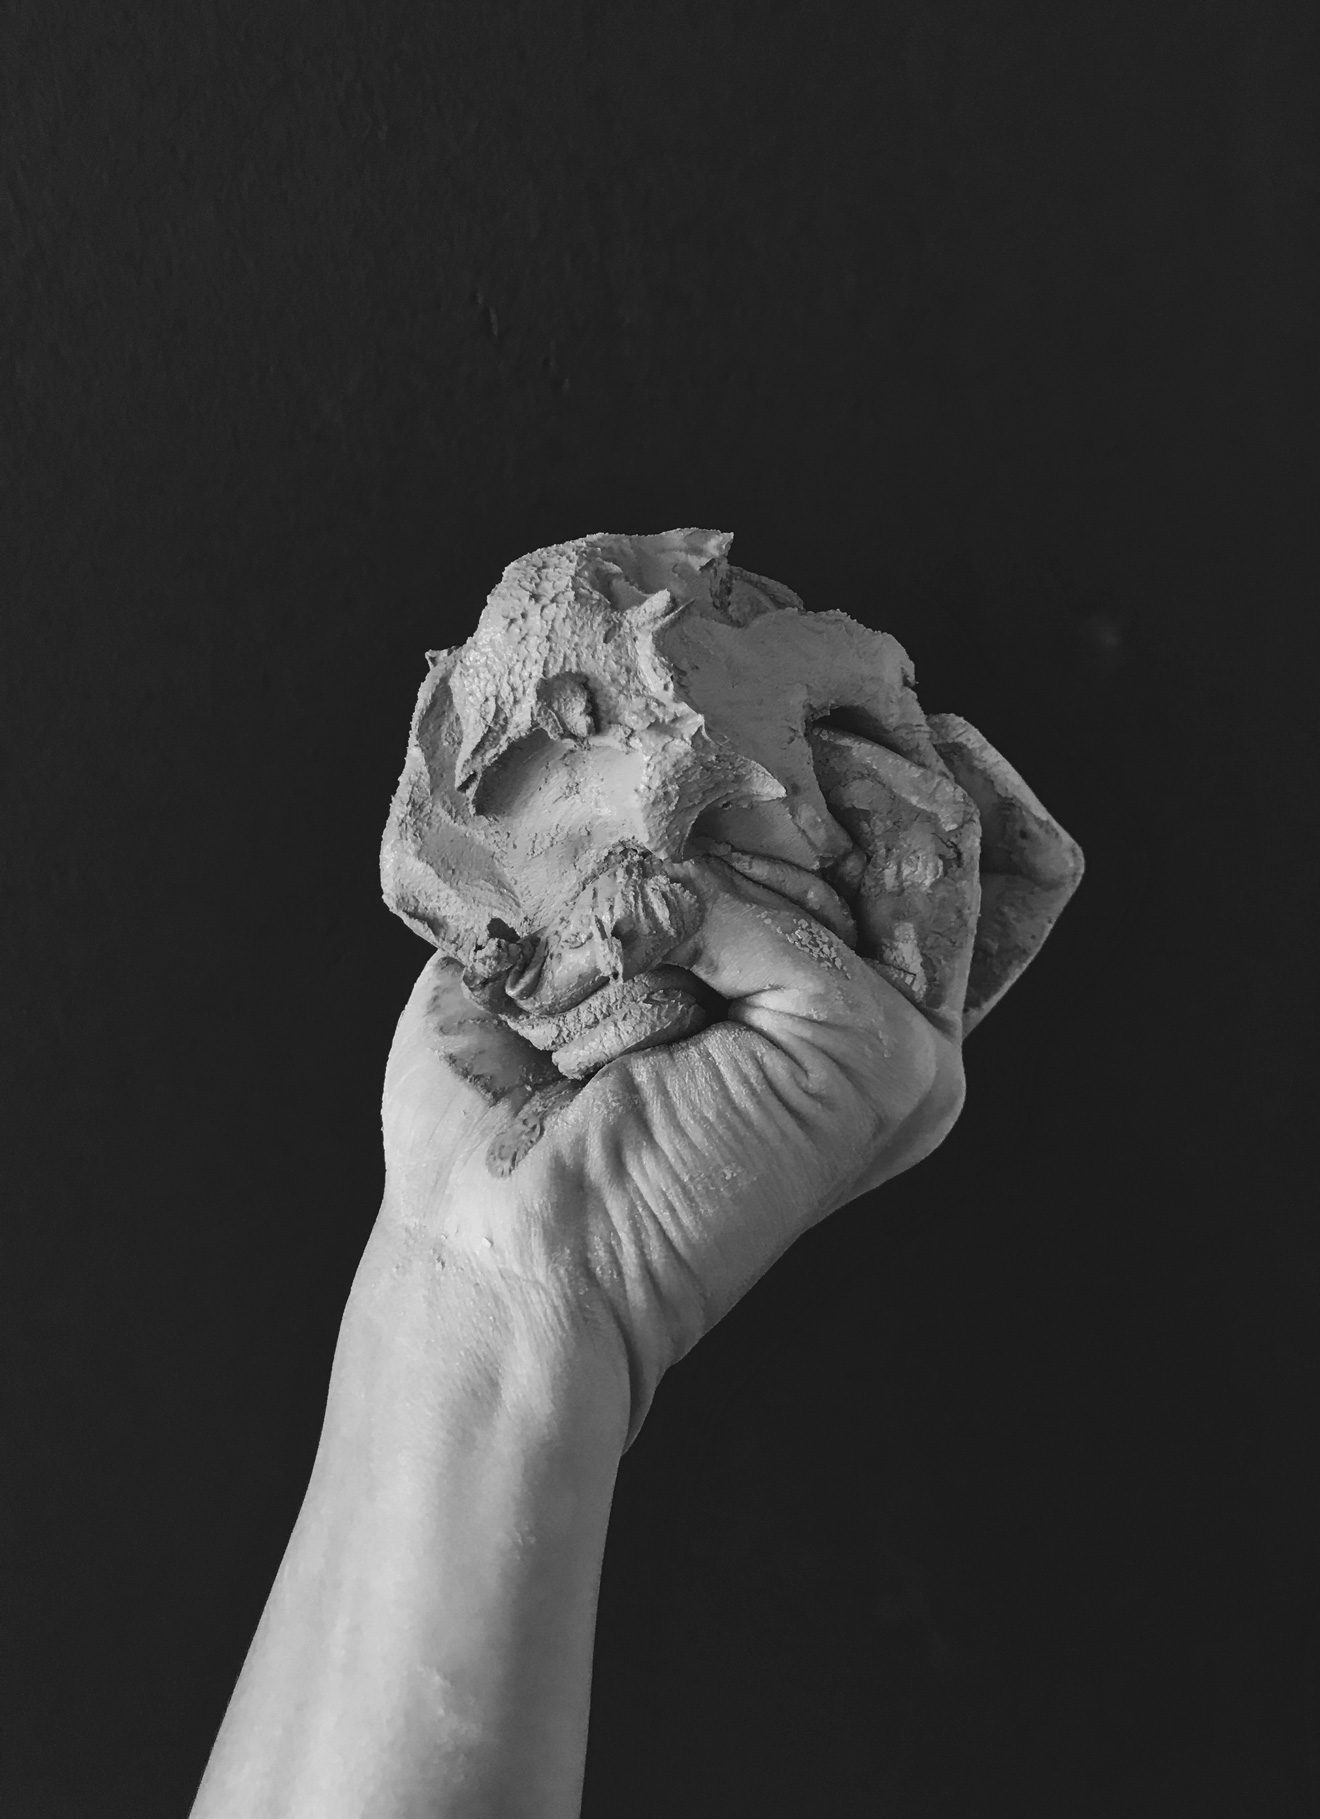 A hand holding a large wad of clay.